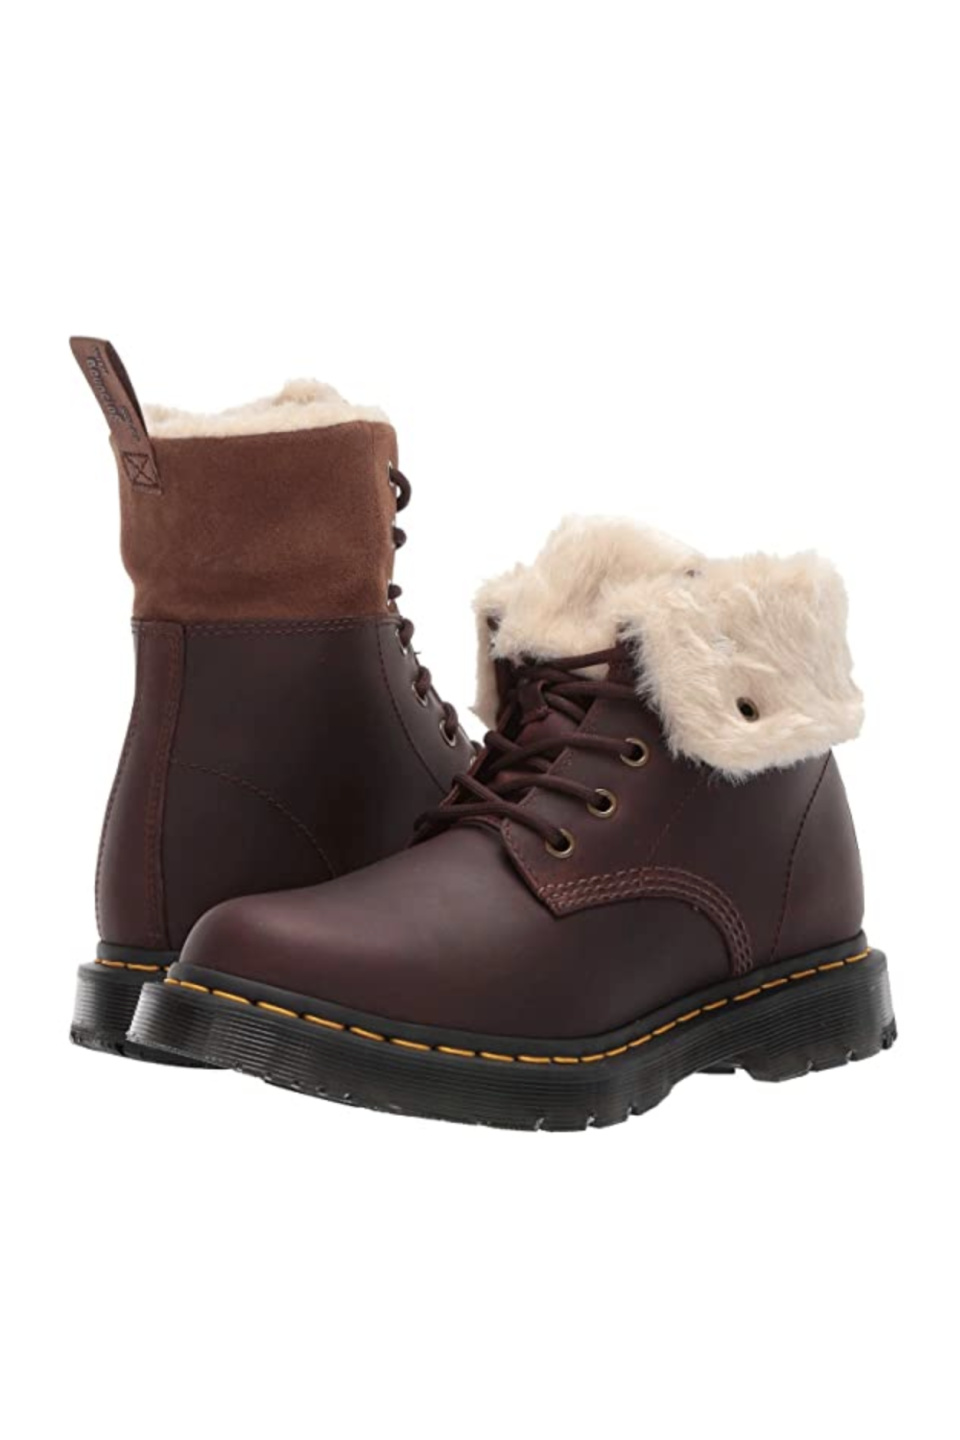 """<p><strong>Dr. Martens</strong></p><p>zappos.com</p><p><strong>$159.95</strong></p><p><a href=""""https://go.redirectingat.com?id=74968X1596630&url=https%3A%2F%2Fwww.zappos.com%2Fp%2Fdr-martens-1460-kolbert-wintergrip%2Fproduct%2F9057821&sref=https%3A%2F%2Fwww.marieclaire.com%2Ffashion%2Fg3388%2Fsnow-boots-for-women%2F"""" rel=""""nofollow noopener"""" target=""""_blank"""" data-ylk=""""slk:SHOP IT"""" class=""""link rapid-noclick-resp"""">SHOP IT</a></p><p>City dwellers might not need a heavy duty snow boot like those who live in the more suburban areas, so opt for these cozy leather Dr. Martens. They'll still protect you against the salted and icy streets, but look more fashion-forward thanks to the faux fur lining, which is revealed when you fold down the shaft. </p>"""